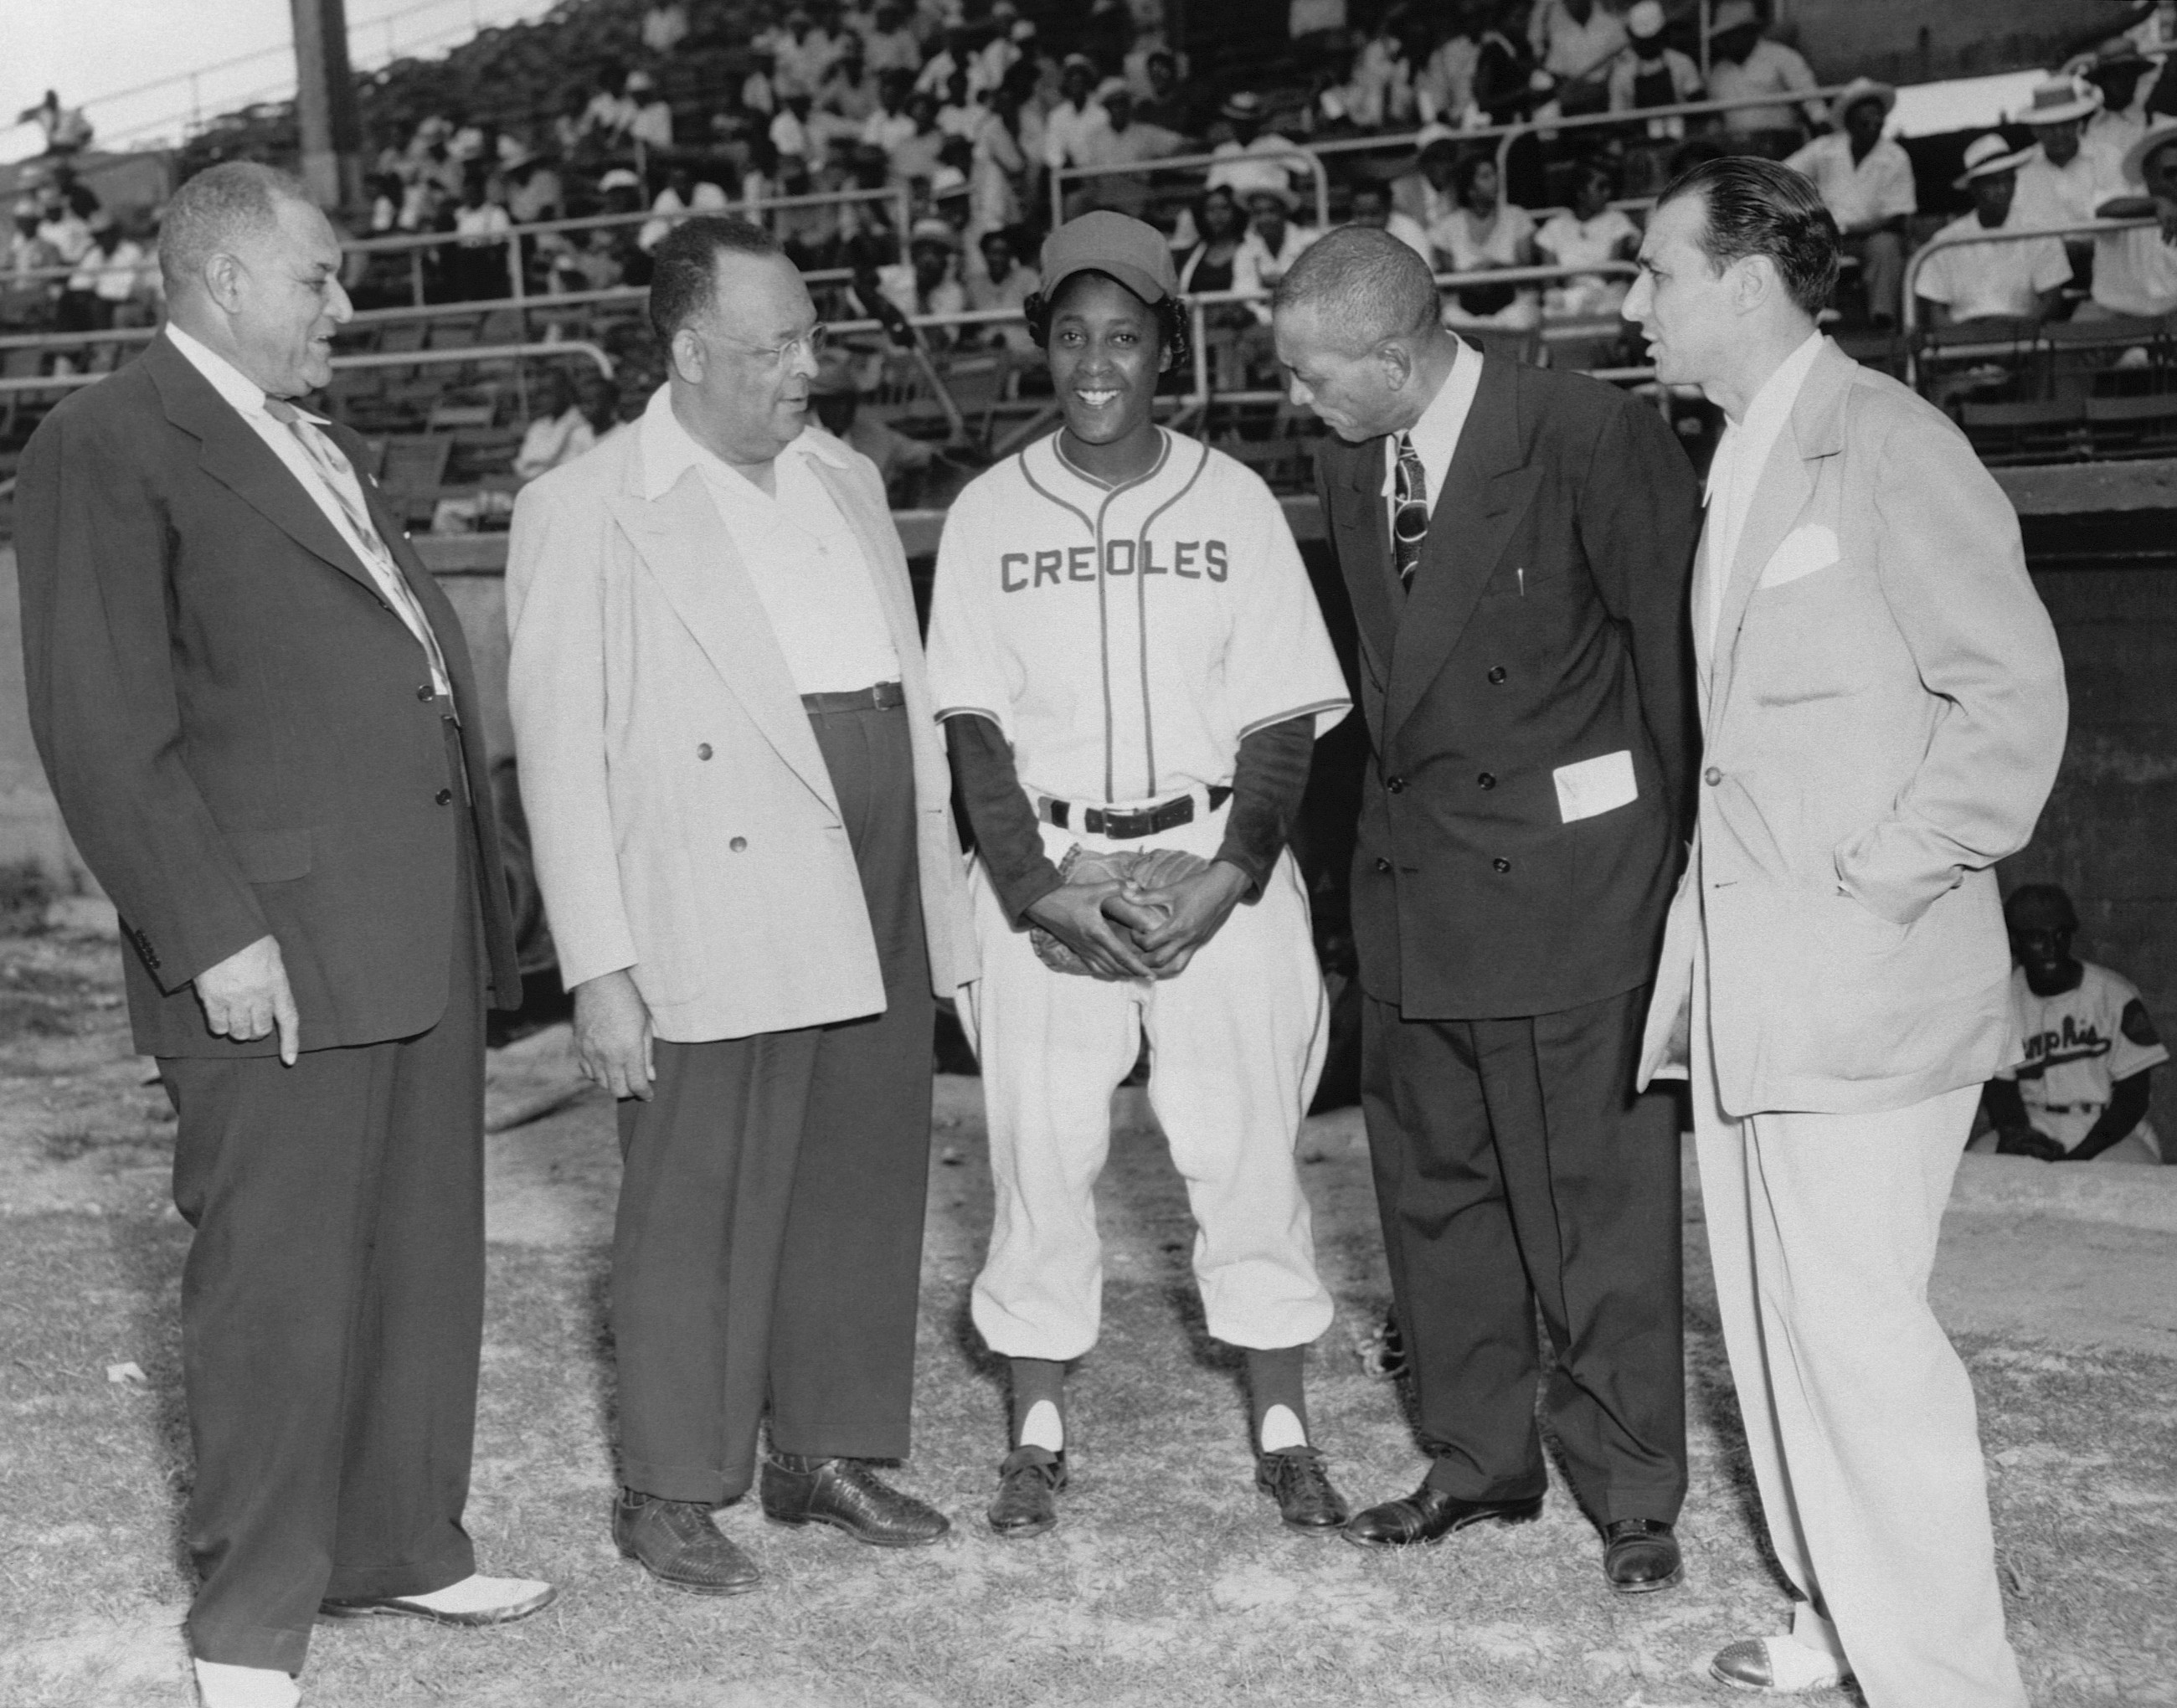 This woman shattered the gender barrier in pro baseball